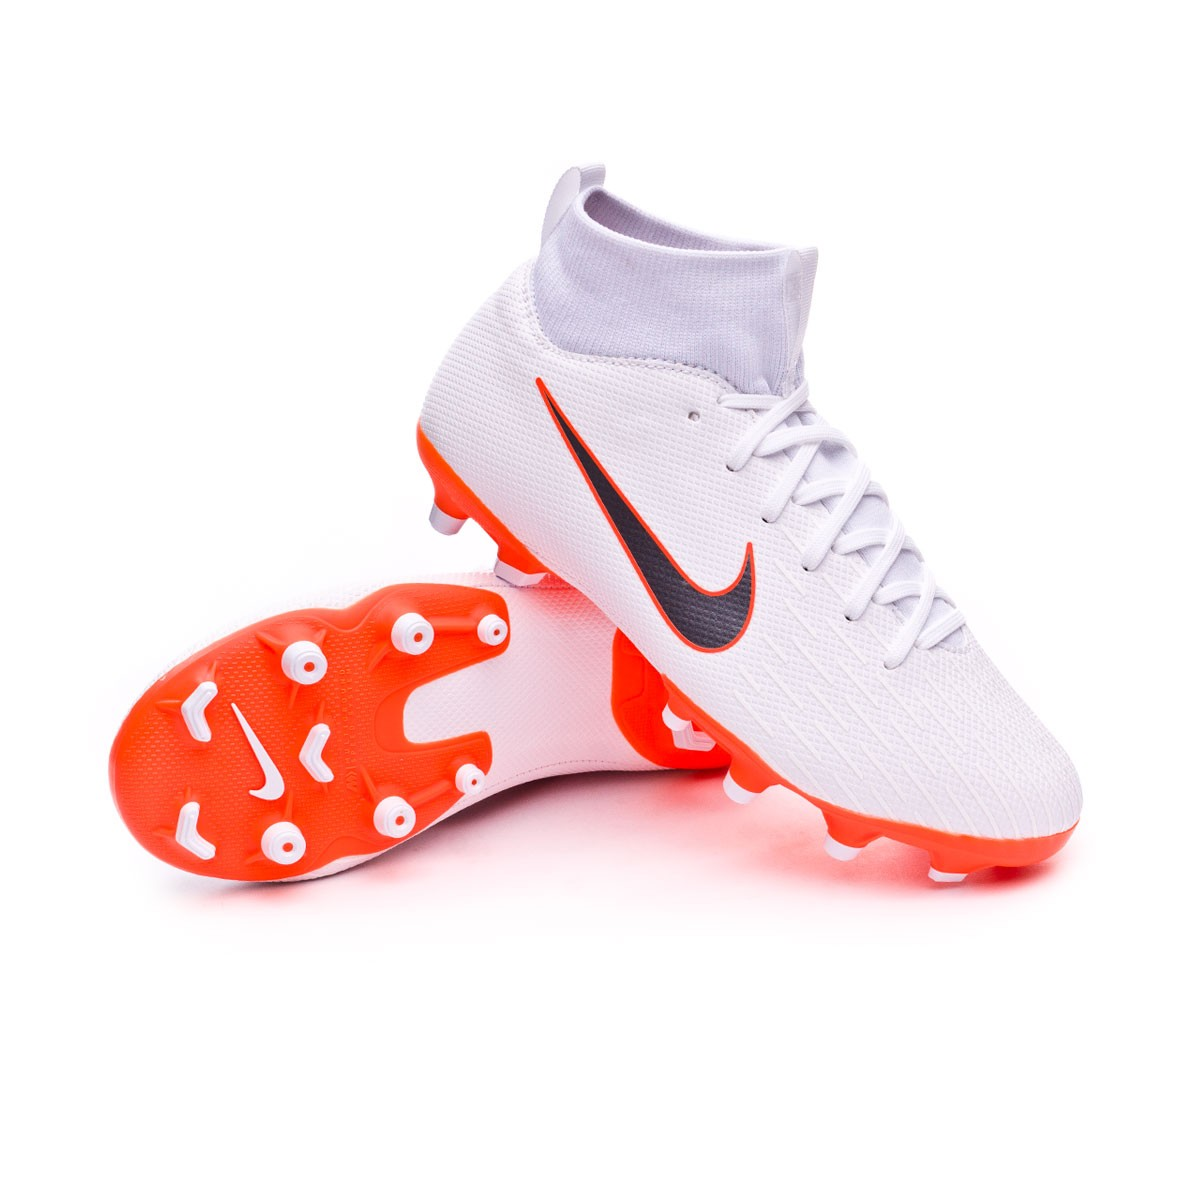 Superfly Nike Gs De Chaussure Academy Mercurial Football Vi Mg ZOzInxP1W